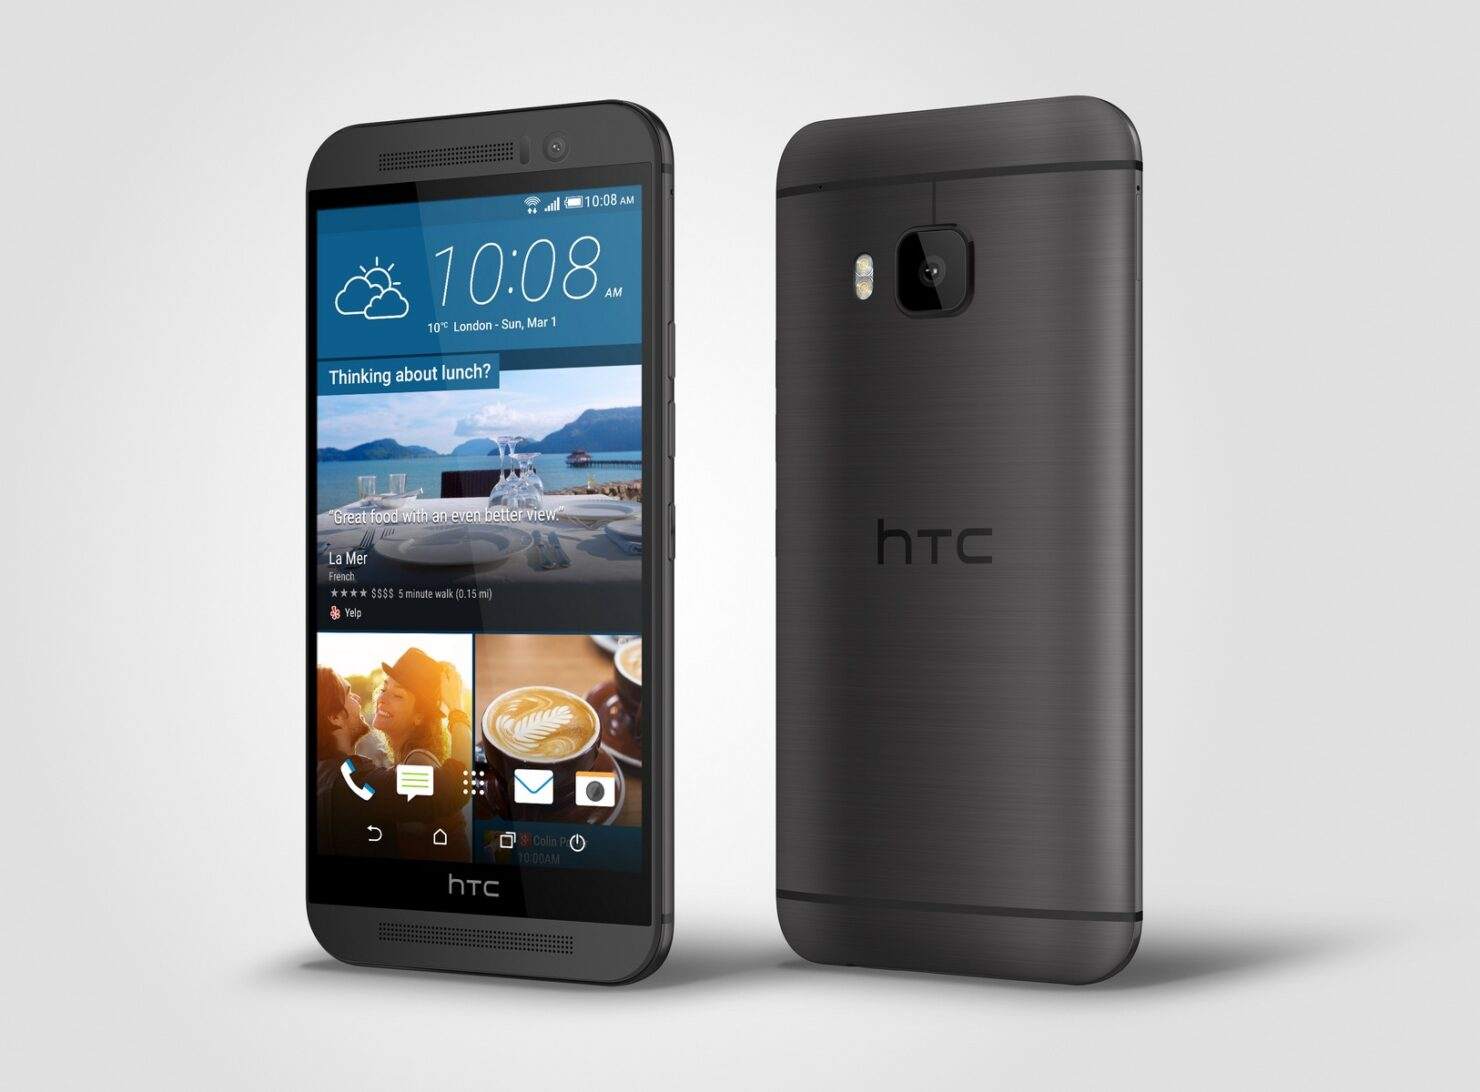 htc-one-m9-all-the-official-images-9